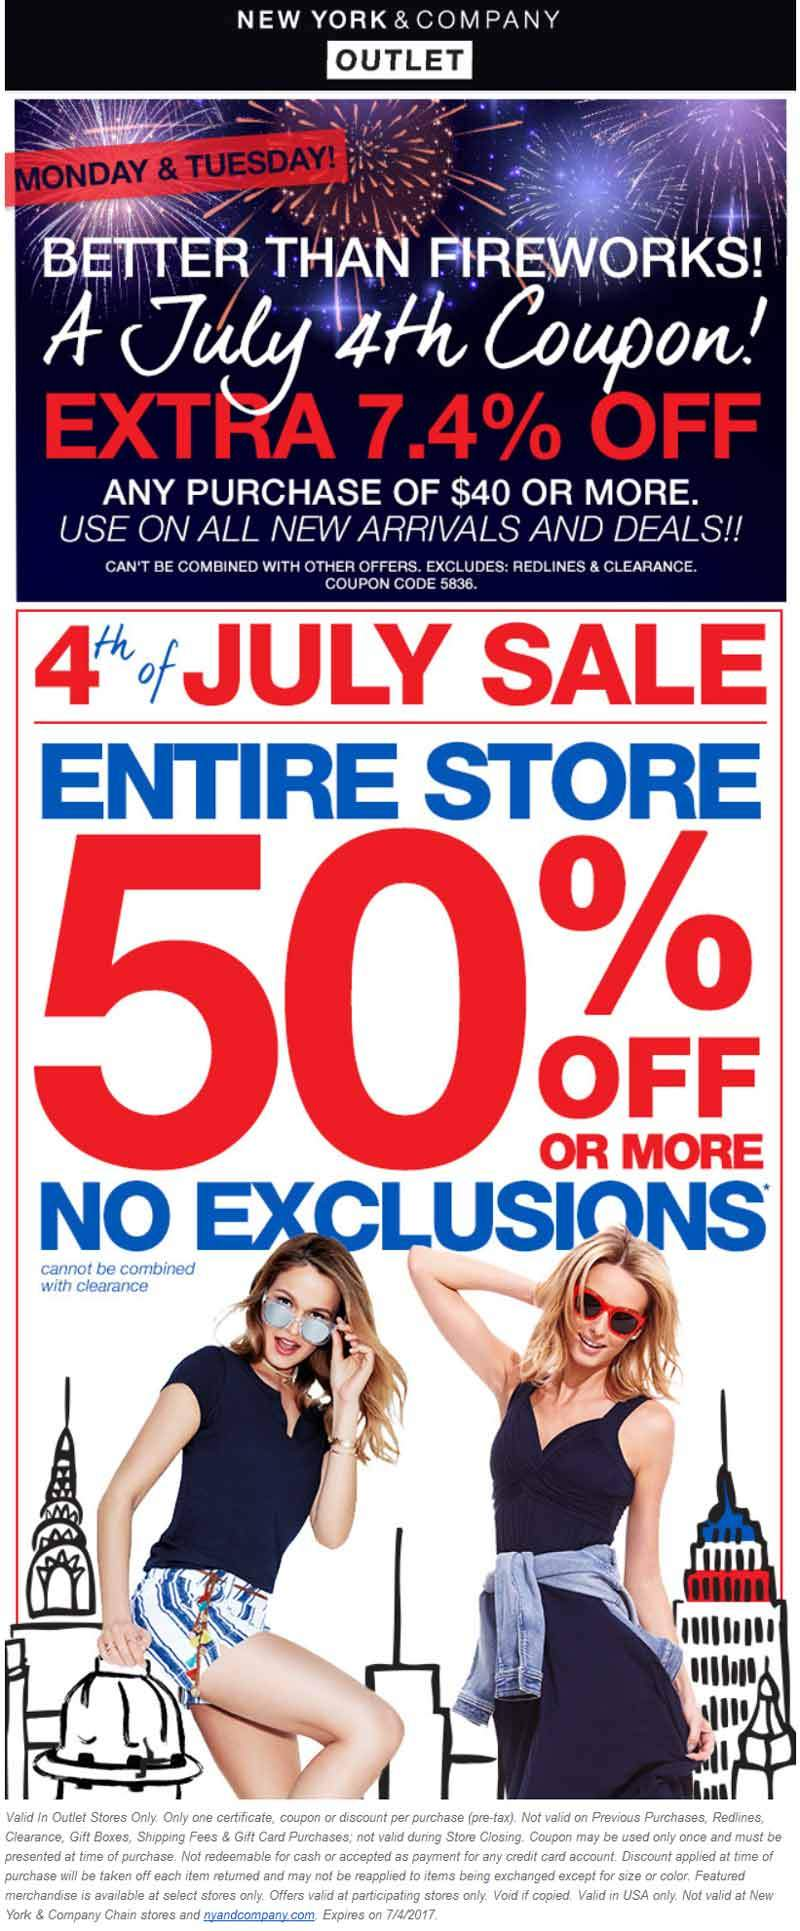 New York & Company Coupon January 2019 Everything is 50% off & more at New York & Company Outlet locations